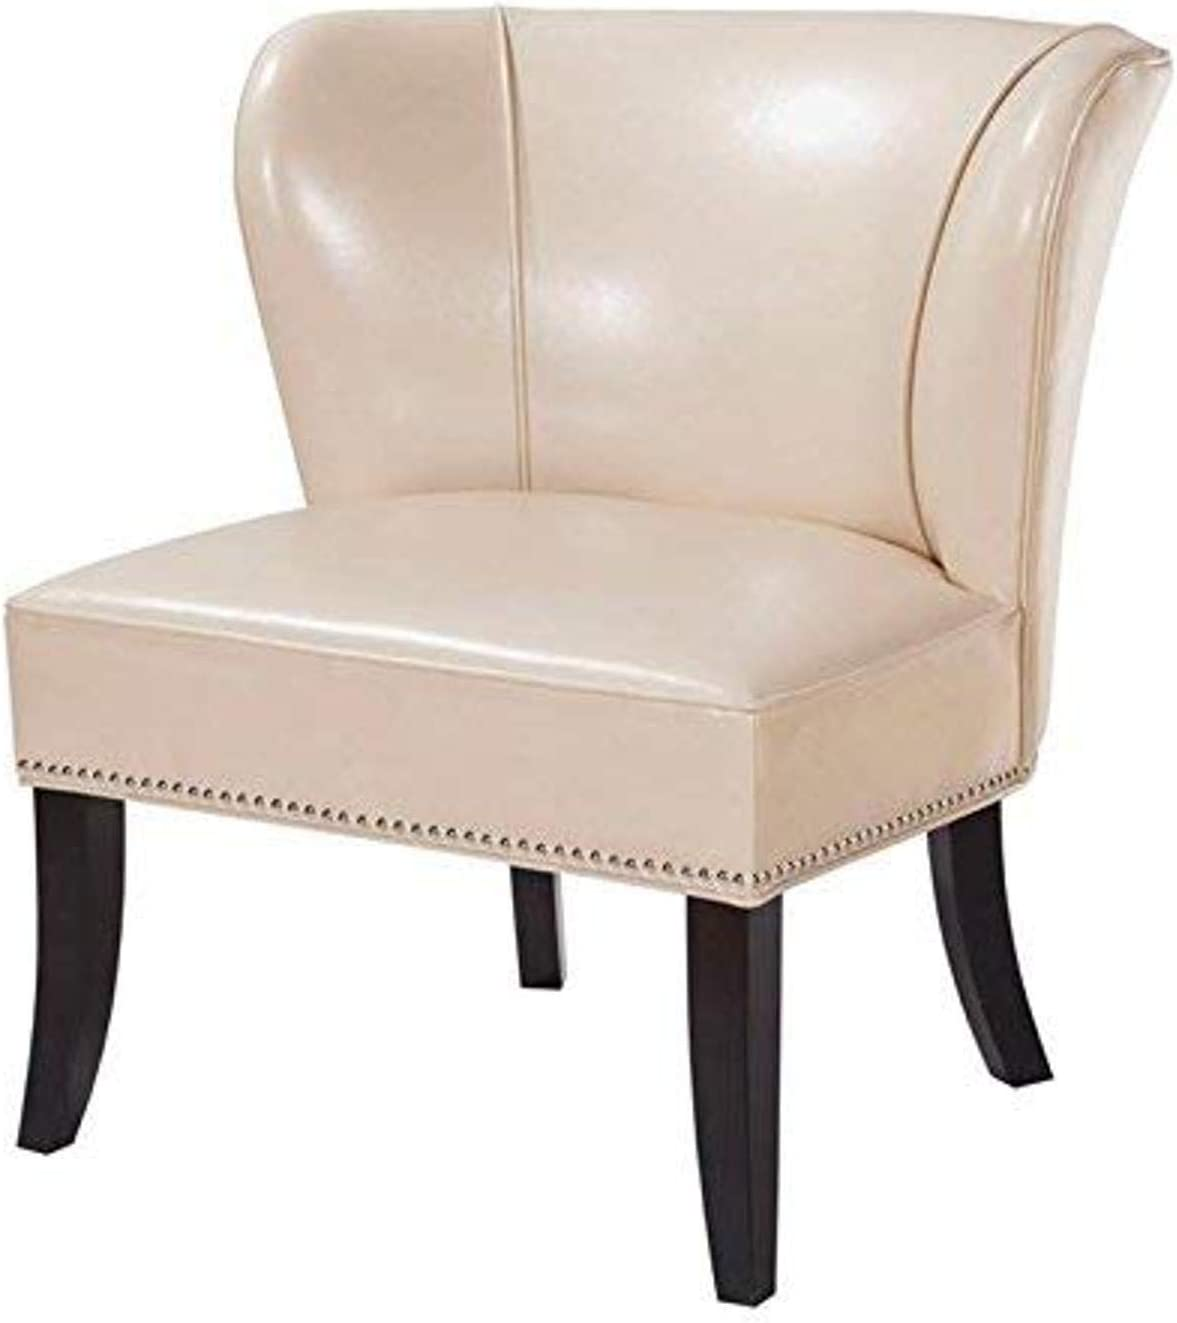 Madison Park Hilton Accent Chairs - Hardwood, Plywood, Wing Back, Deep Seat-Bedroom Lounge Modern Classic Style Living Room Sofa Furniture, Ivory